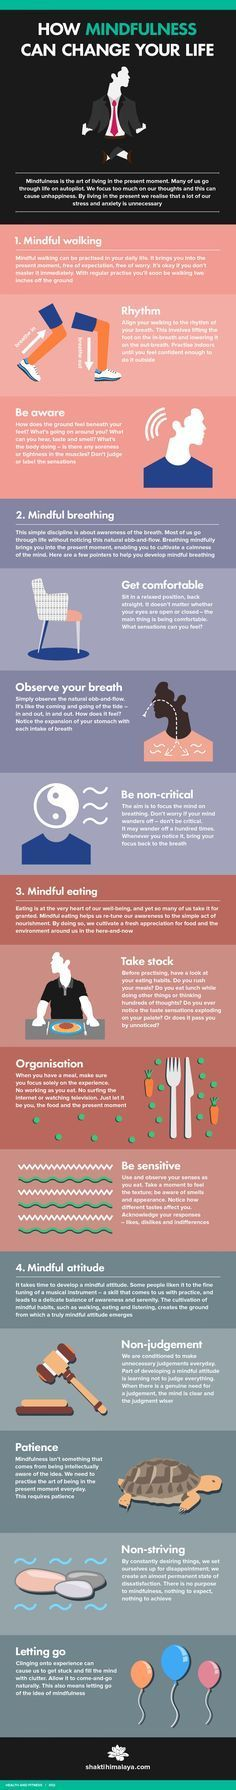 How Mindfulness Can Change Your Life #infographic #Thinking #Mind #Conscious #Health